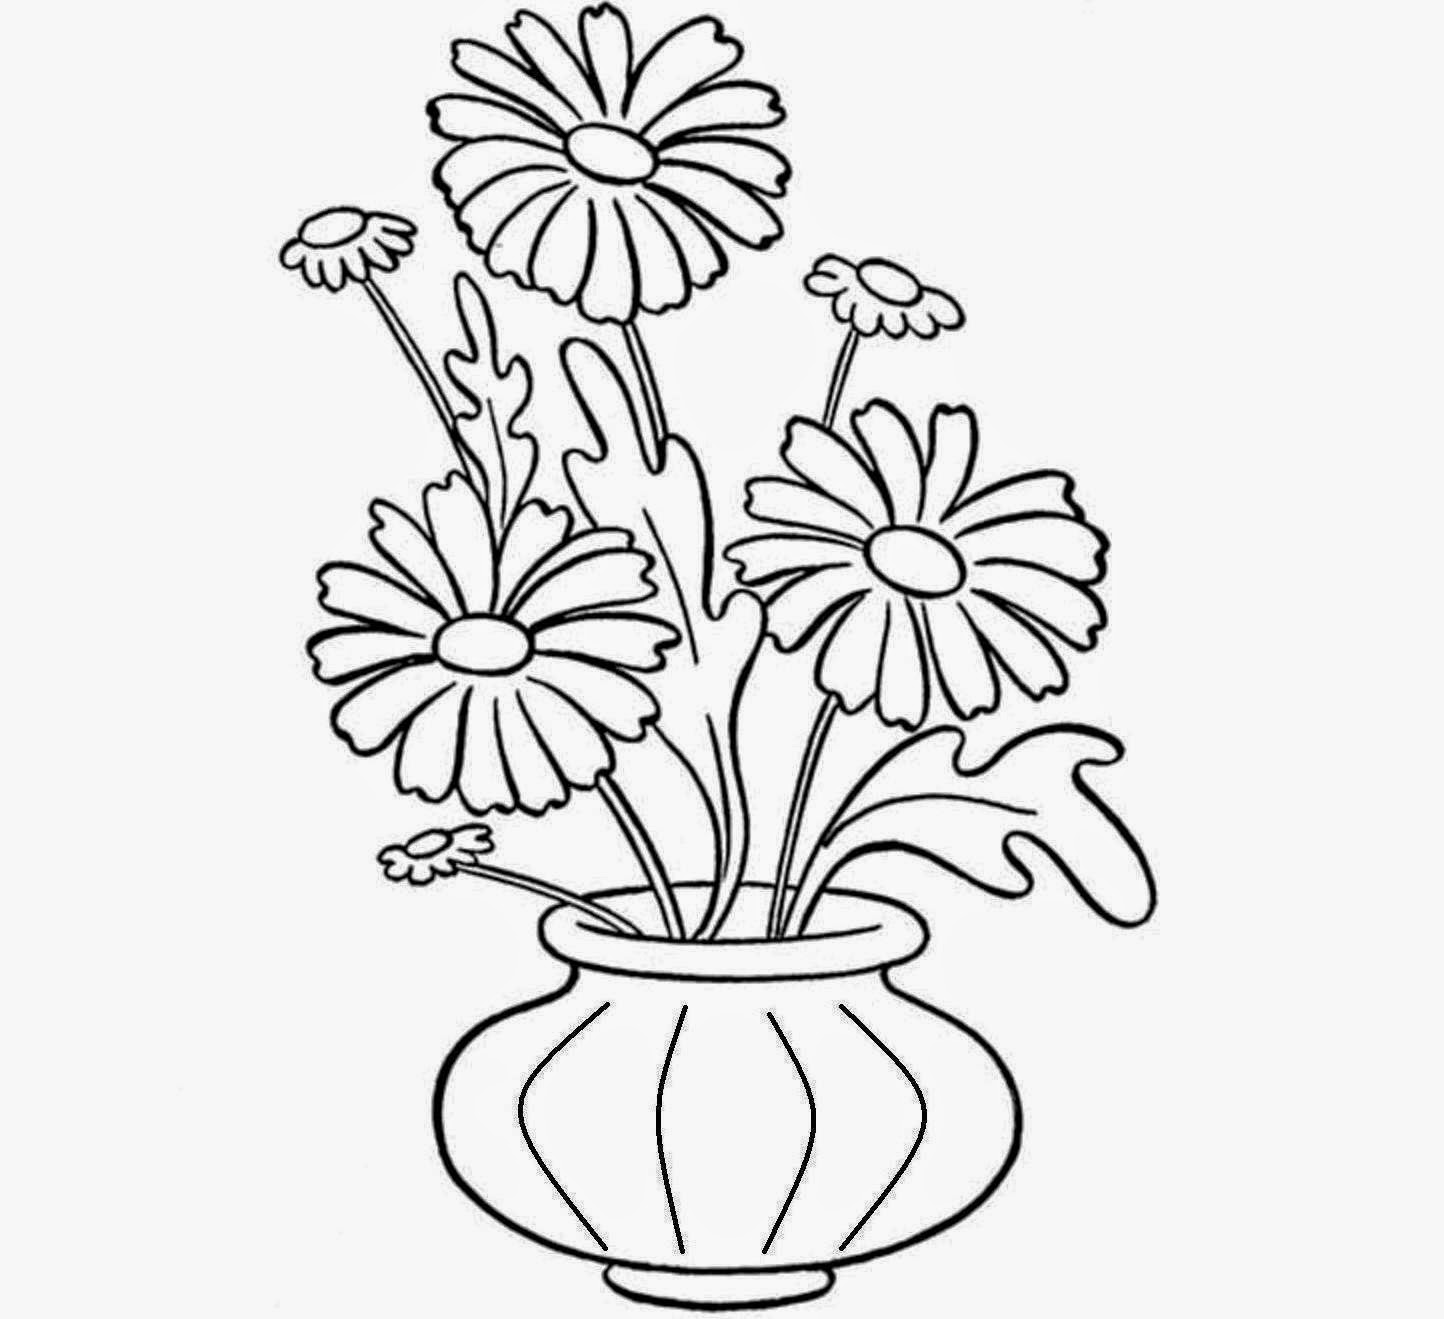 1444x1319 Vase With Flowers Drawings